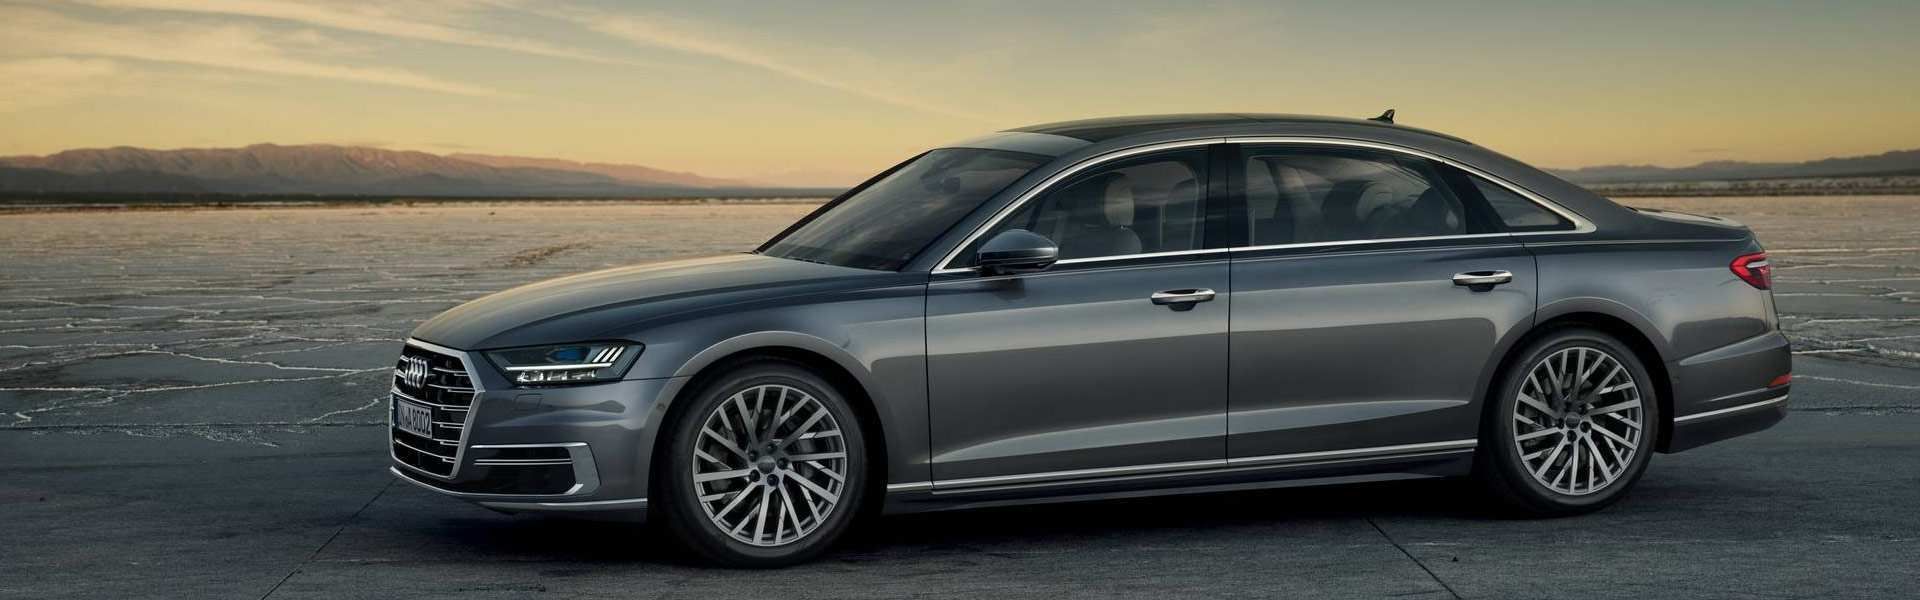 48 Best Audi A8 Price And Release Date